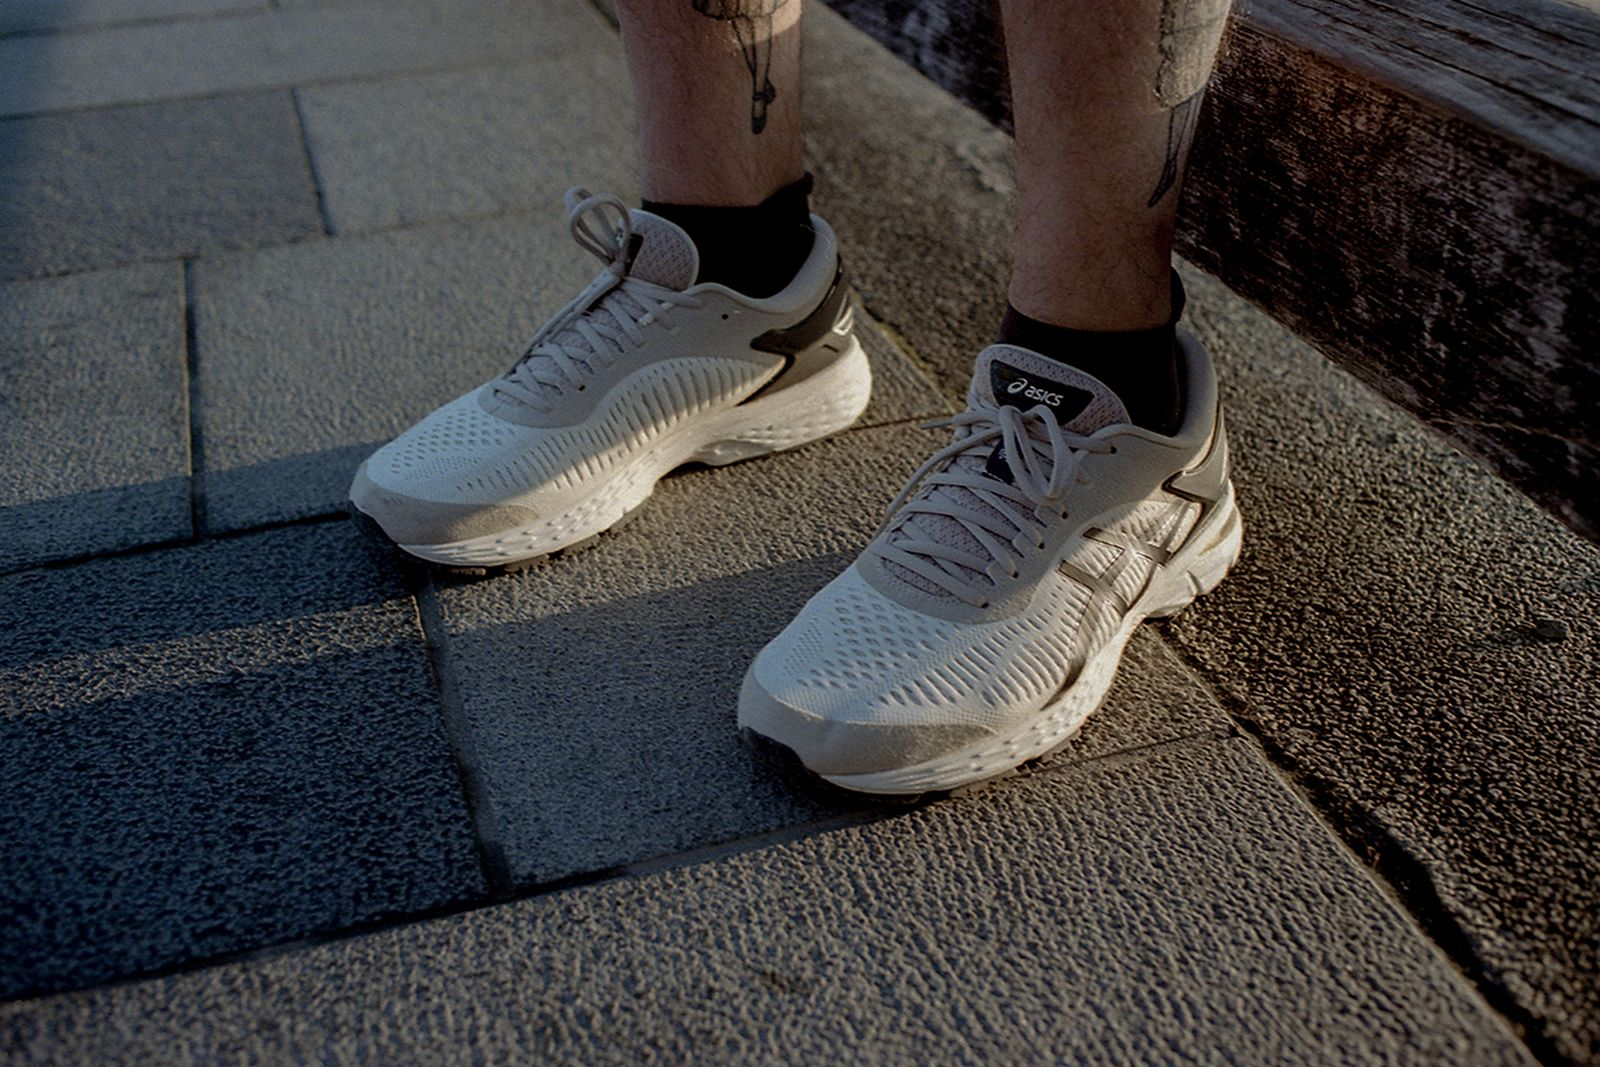 reigning champ asics kyoto edition release date price